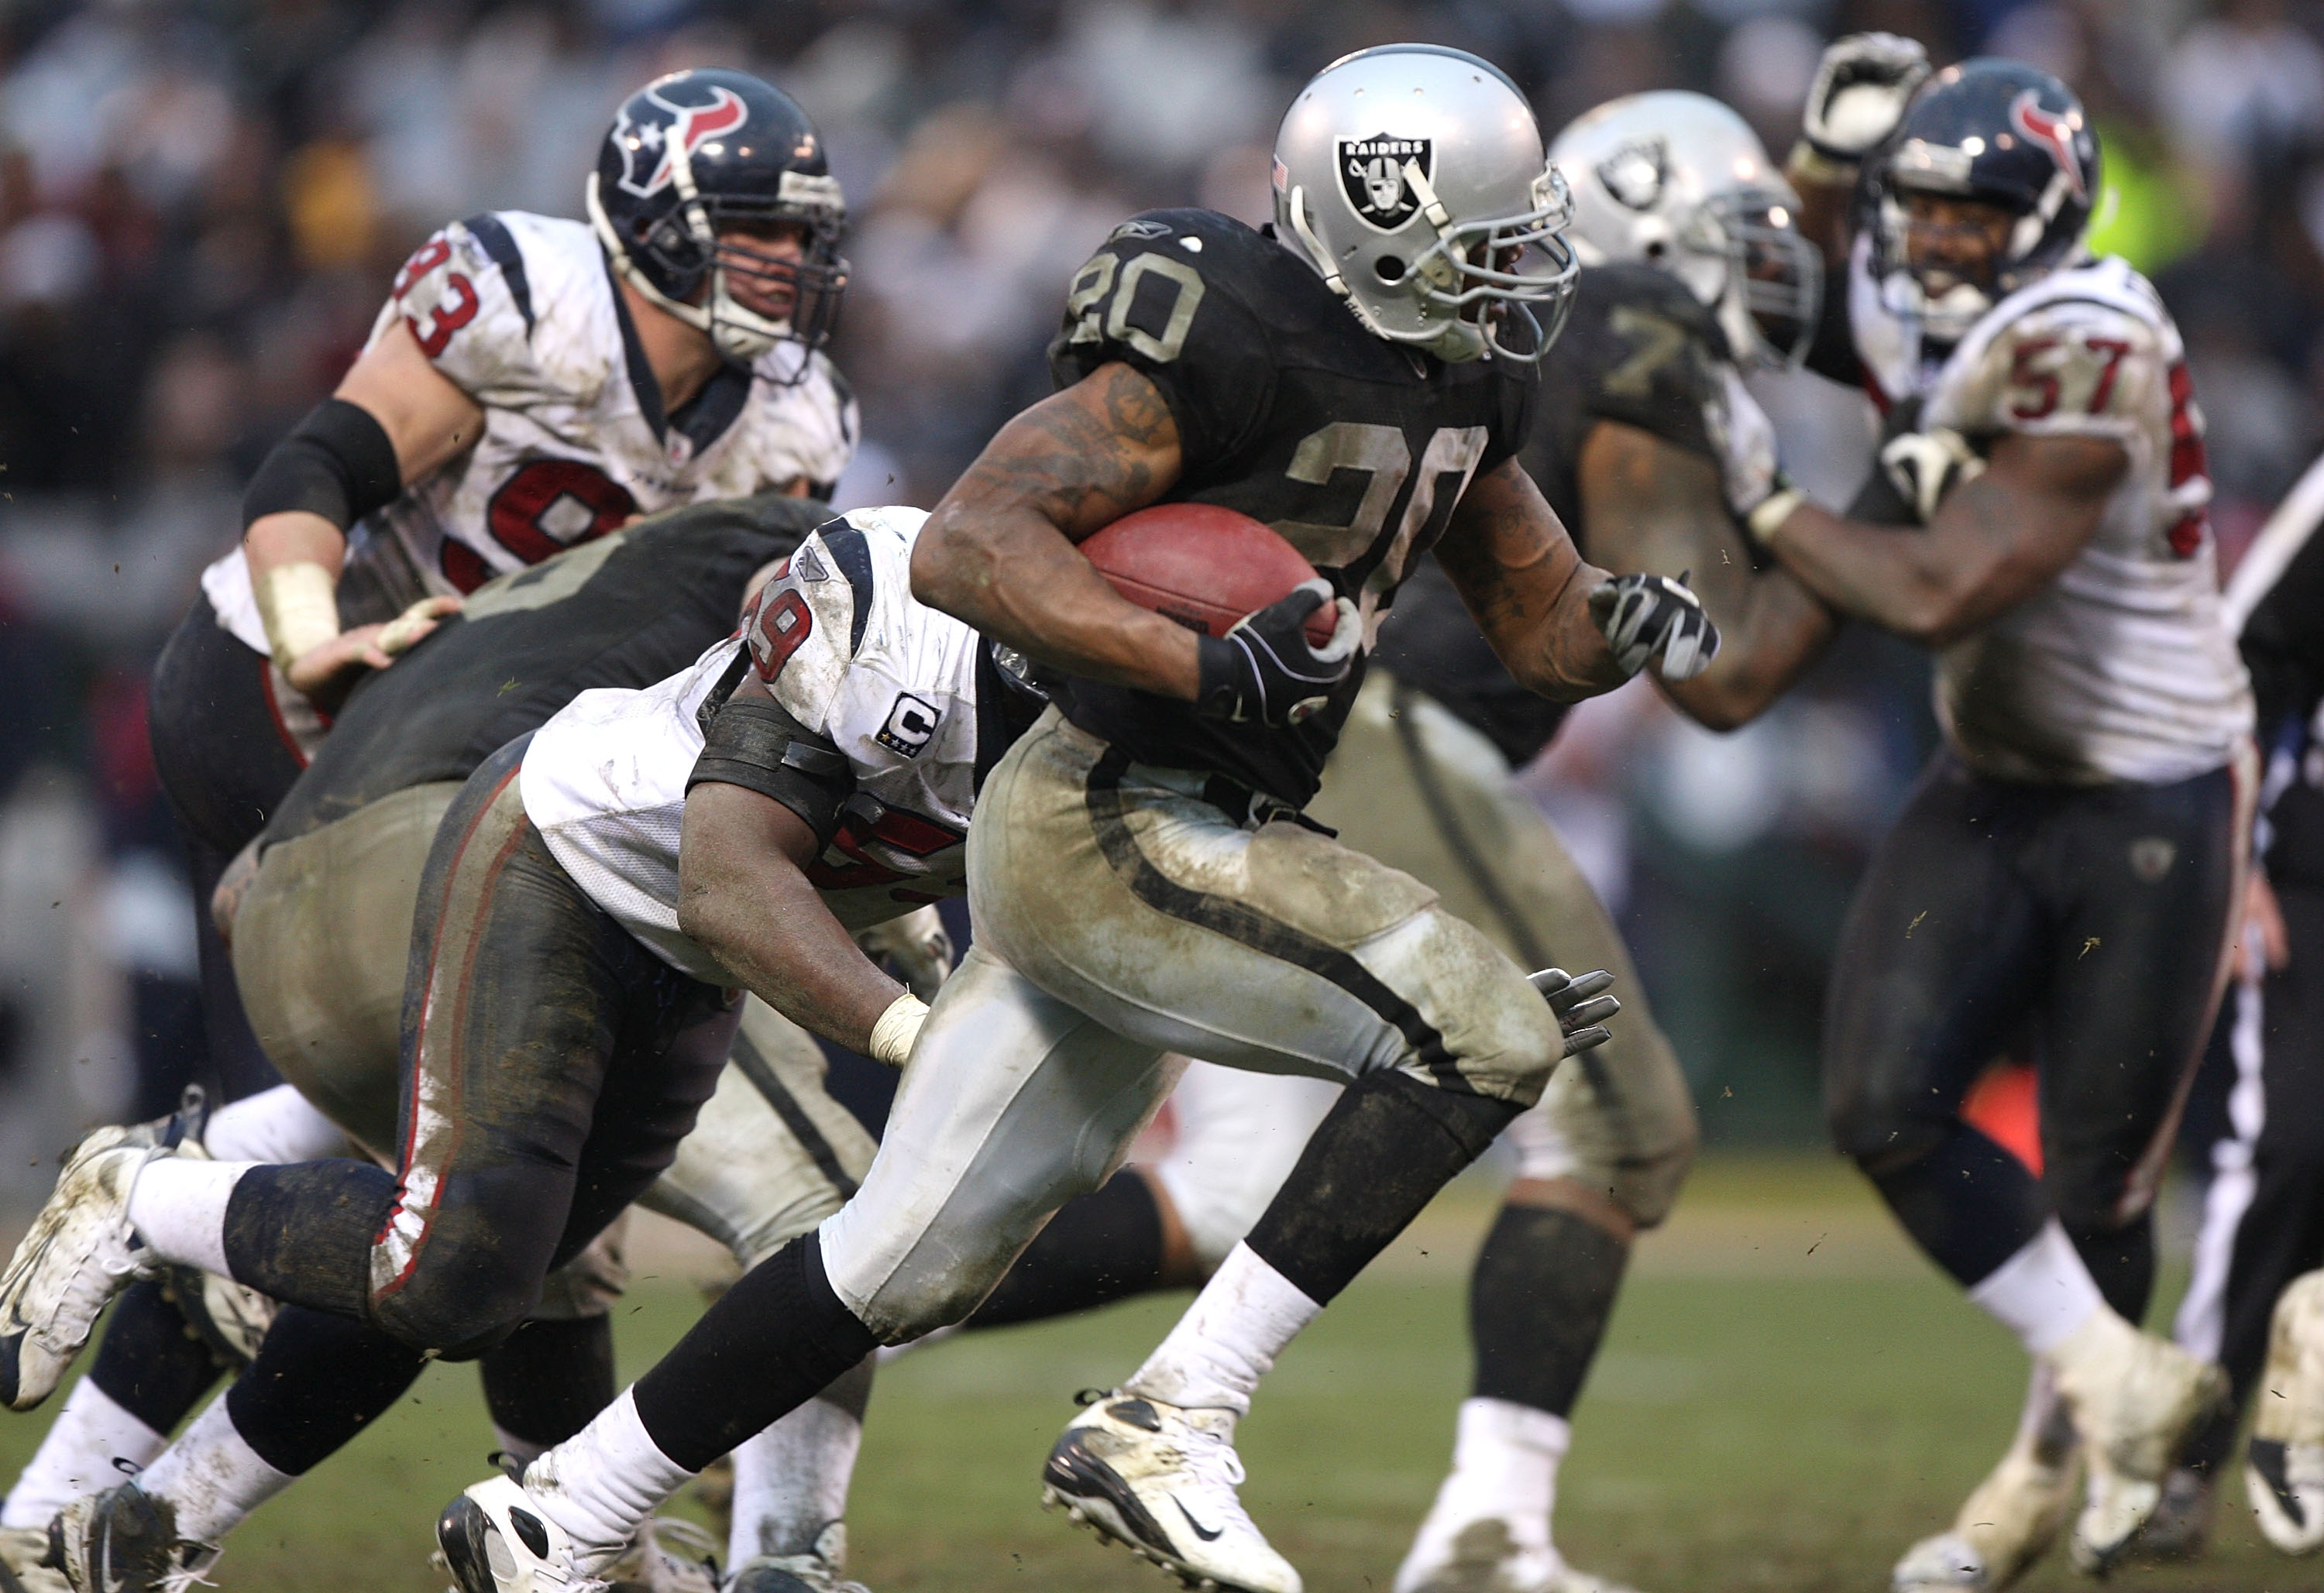 OAKLAND, CA - DECEMBER 21: Darren McFadden #20 of the Oakland Raiders runs against the Houston Texans during an NFL game on December 21, 2008 at the Oakland-Alameda County Coliseum in Oakland, California.  (Photo by Jed Jacobsohn/Getty Images)